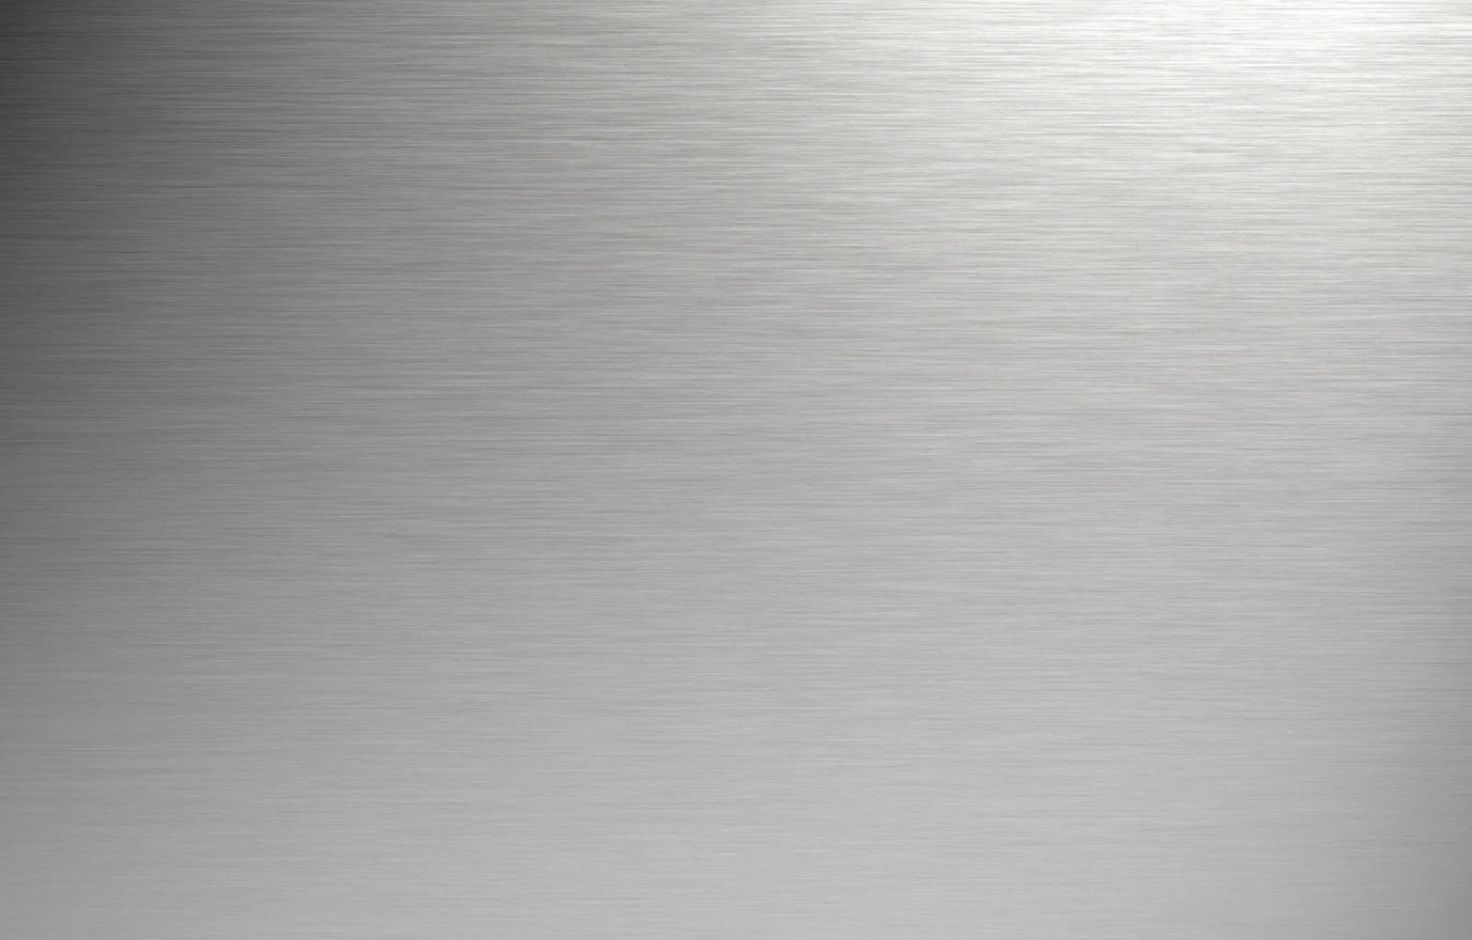 Grey Wallpaper For Basic Background | Image Wallpaper Collections